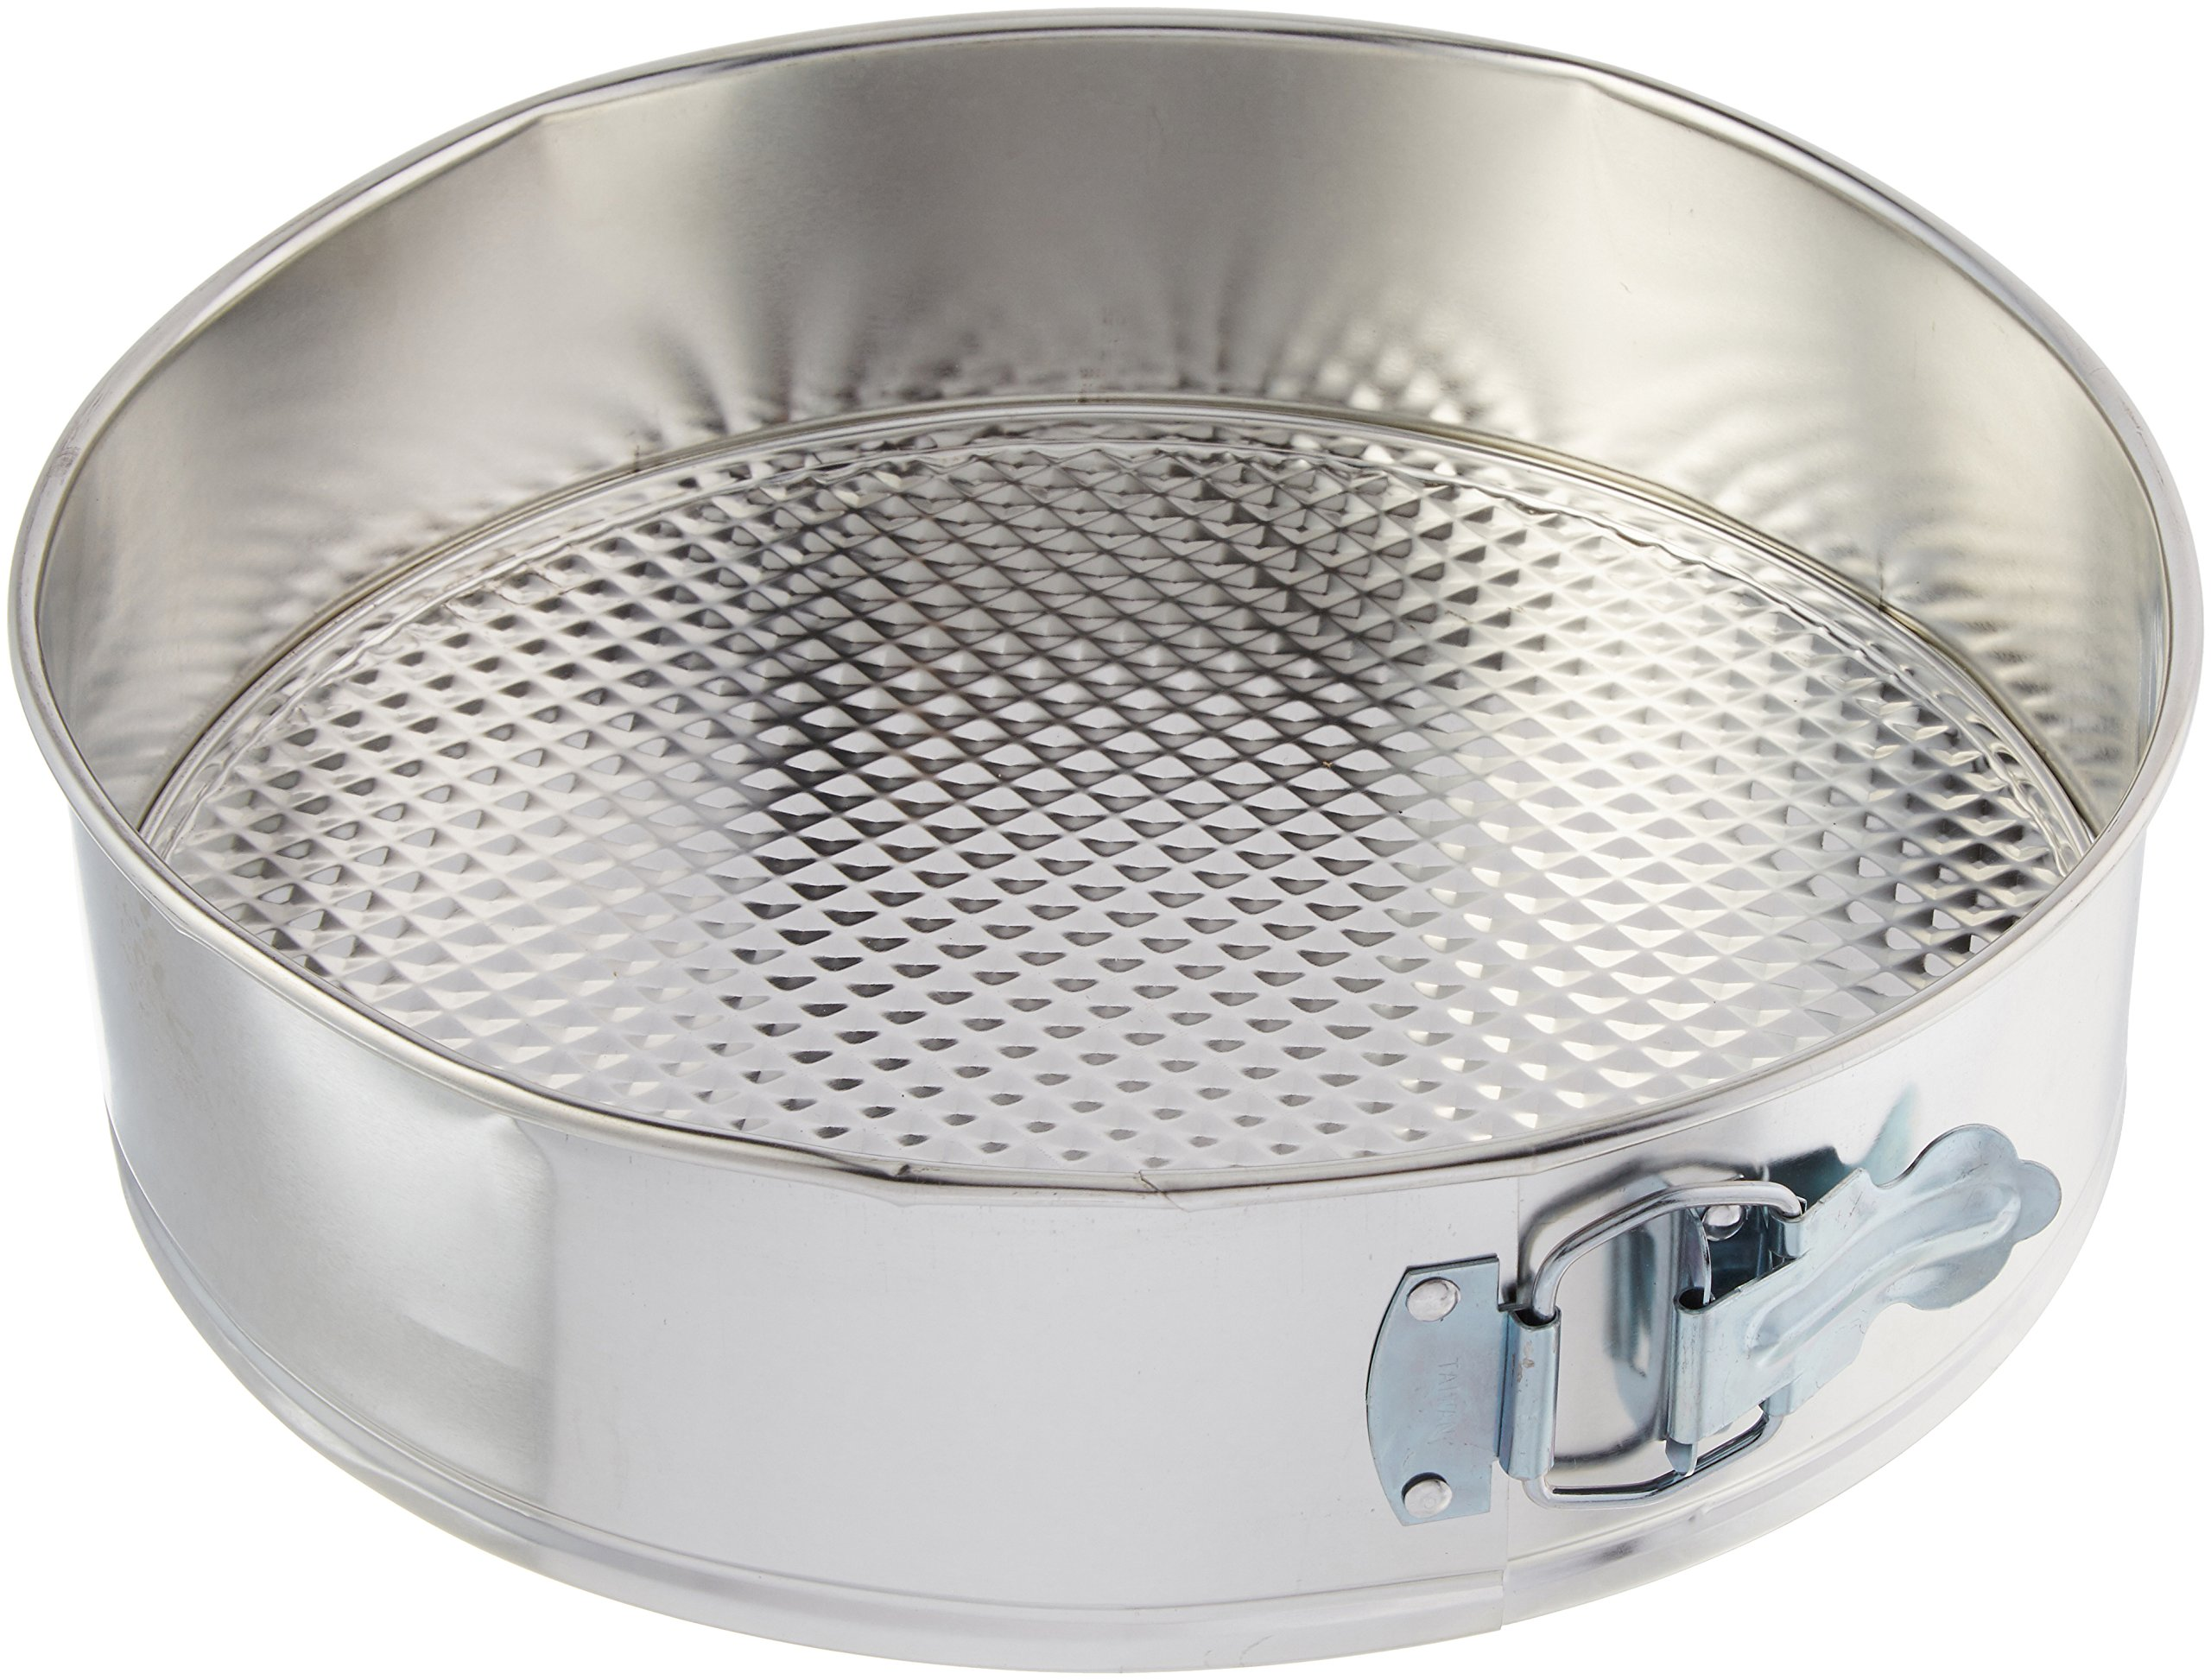 12-Inch Heavy Duty Spring Form Pan Winco HSP-123